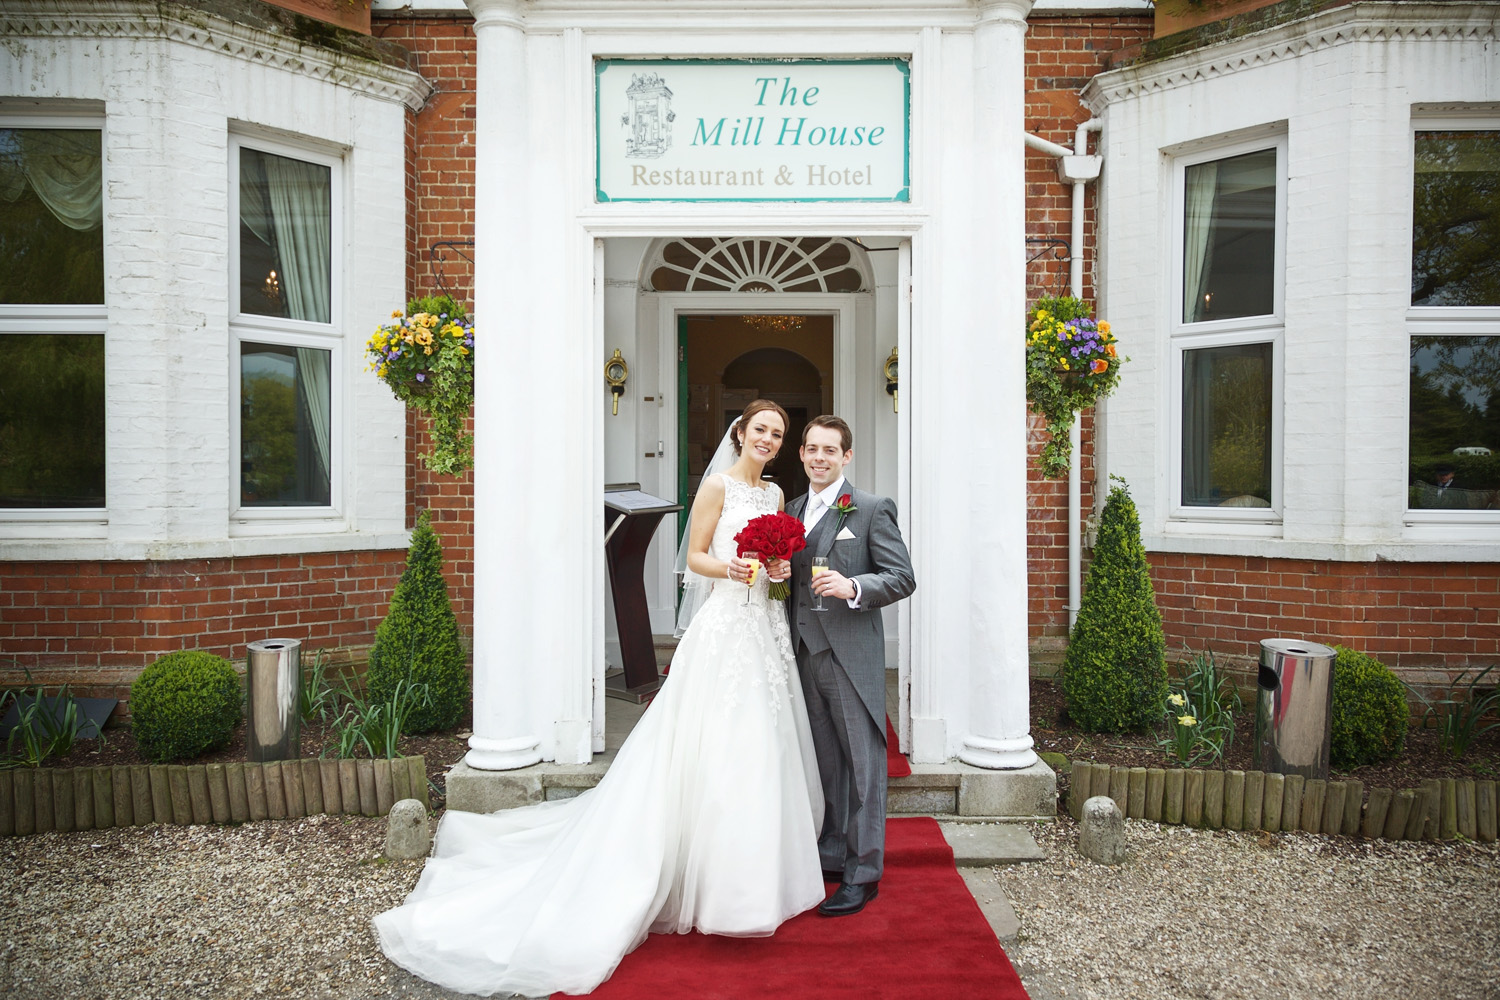 The_Mill_House_Wedding_Photographer_Swallowfield_006.jpg